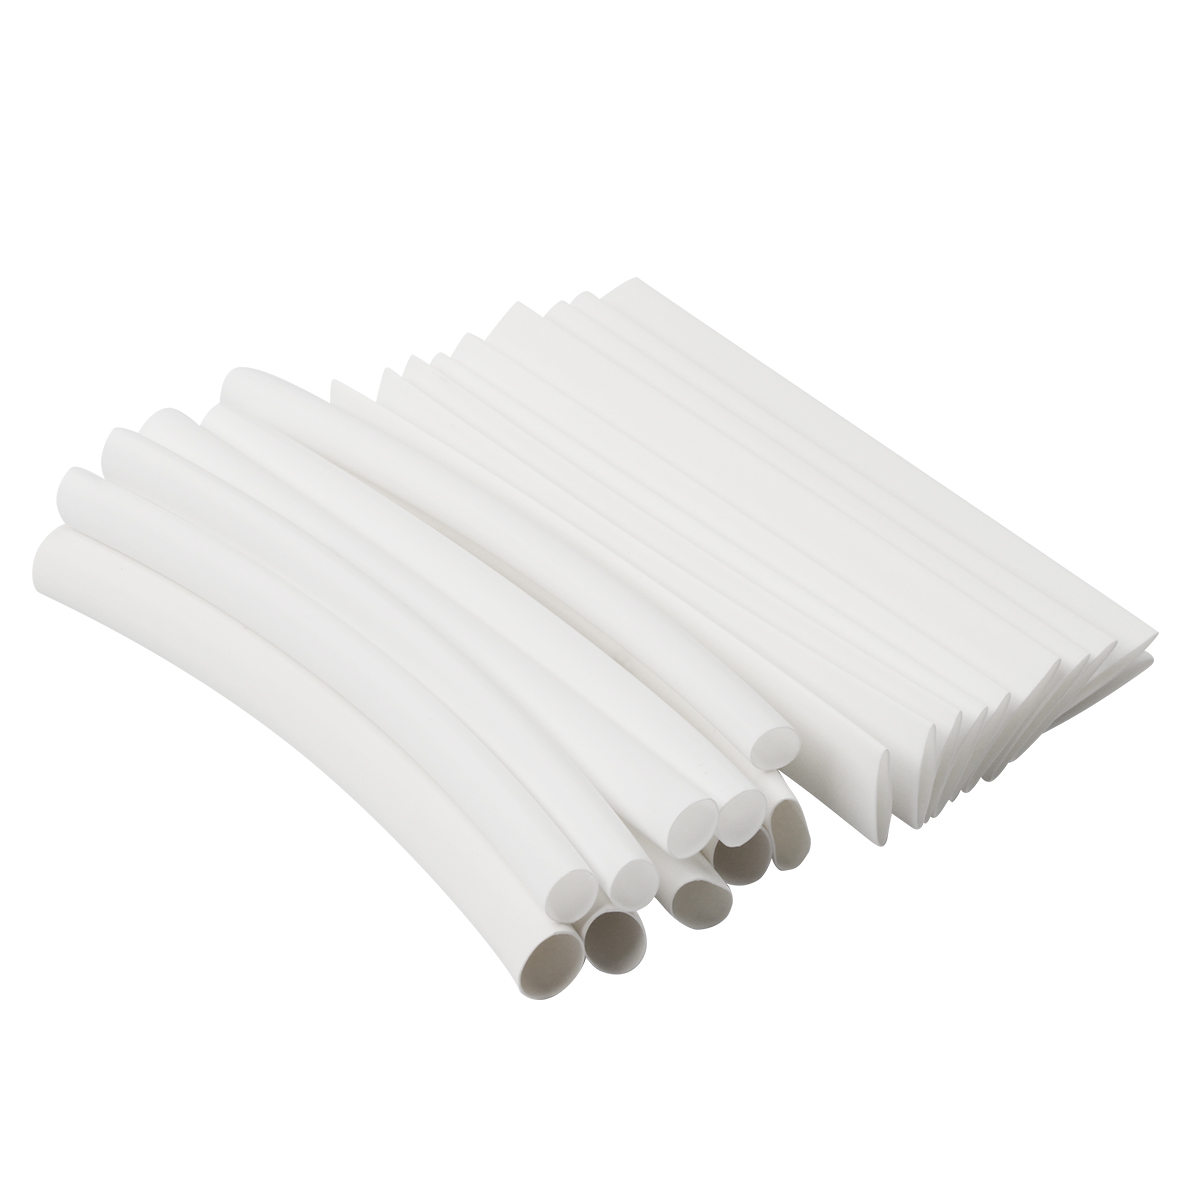 20pcs 1M Heat Shrink Tubing Sleeve White 3/4:1 Wrap Wire For iPhone For iPad For Android For Samsung Data Line Heatshrink Tubes